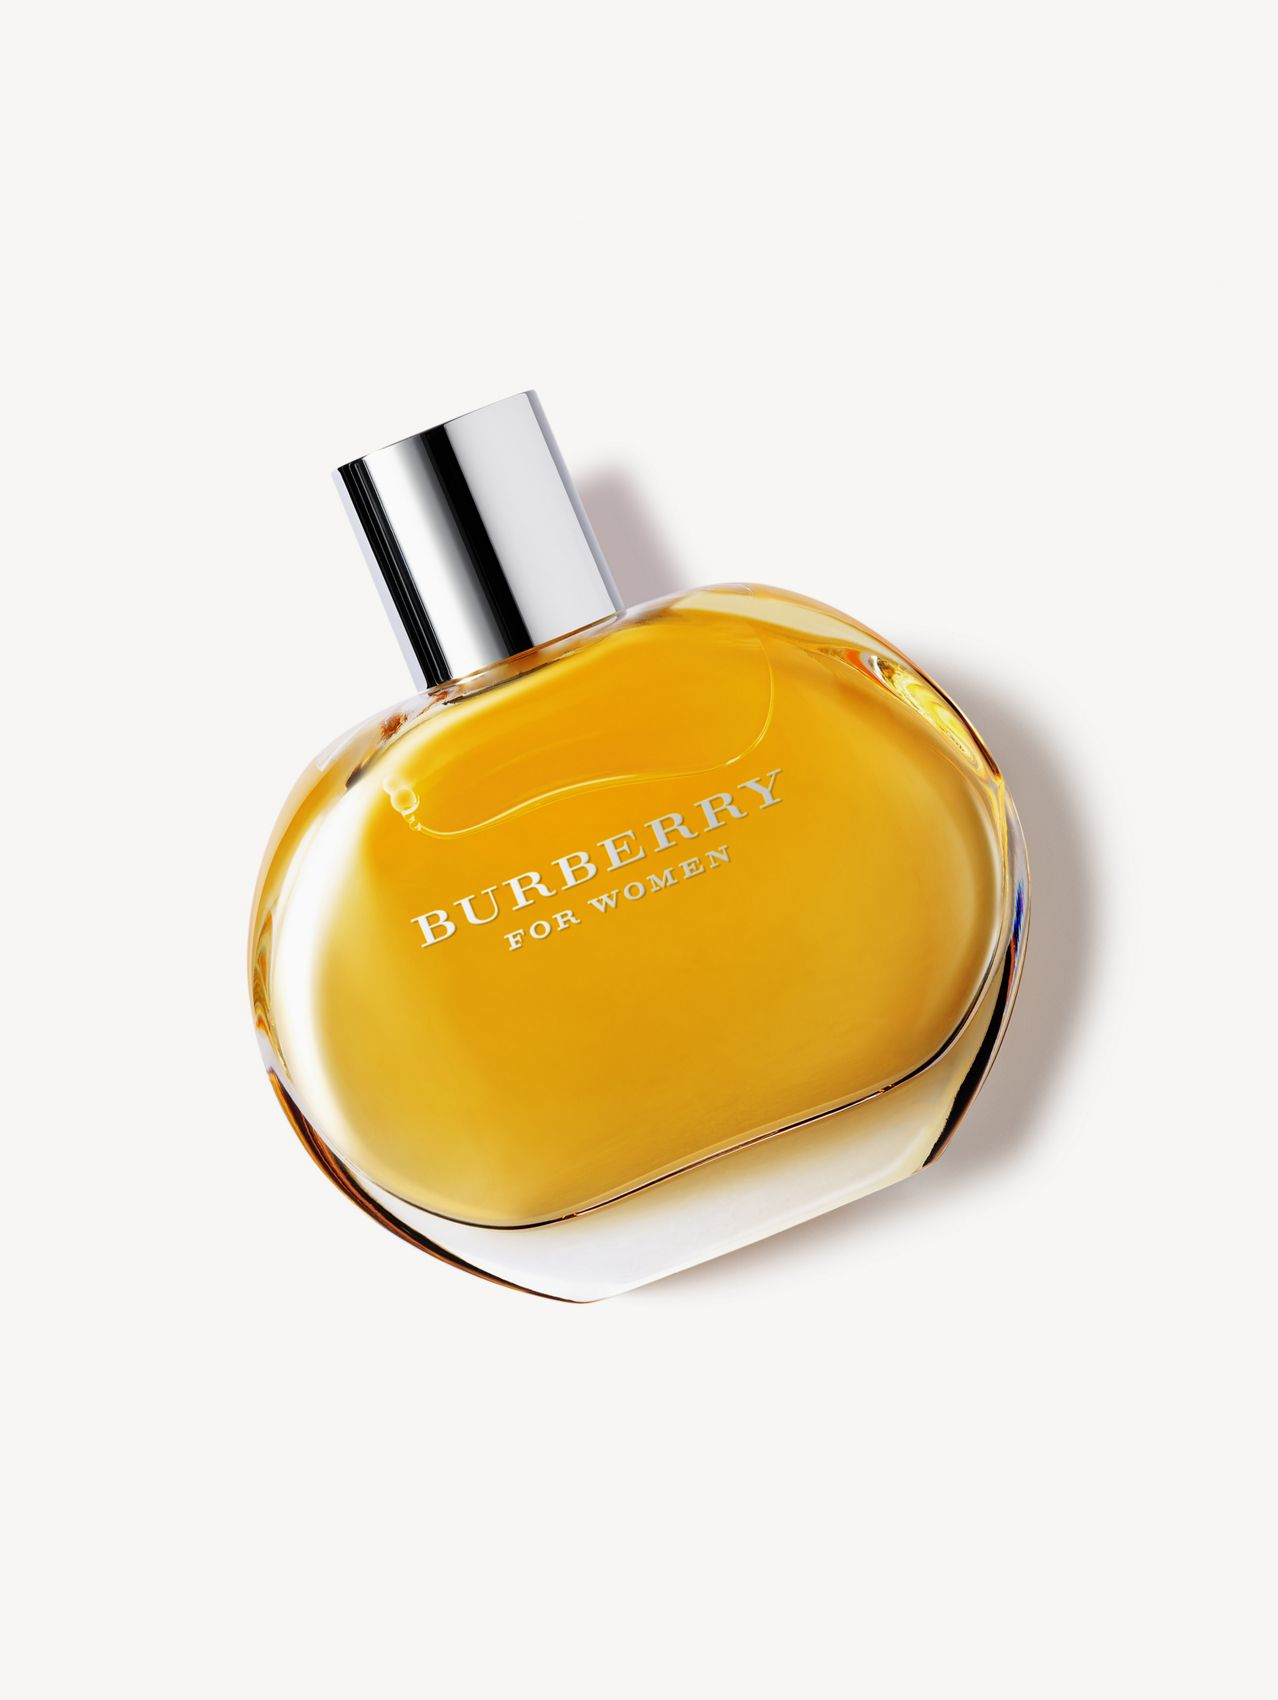 Burberry For Women Eau de Parfum 100ml